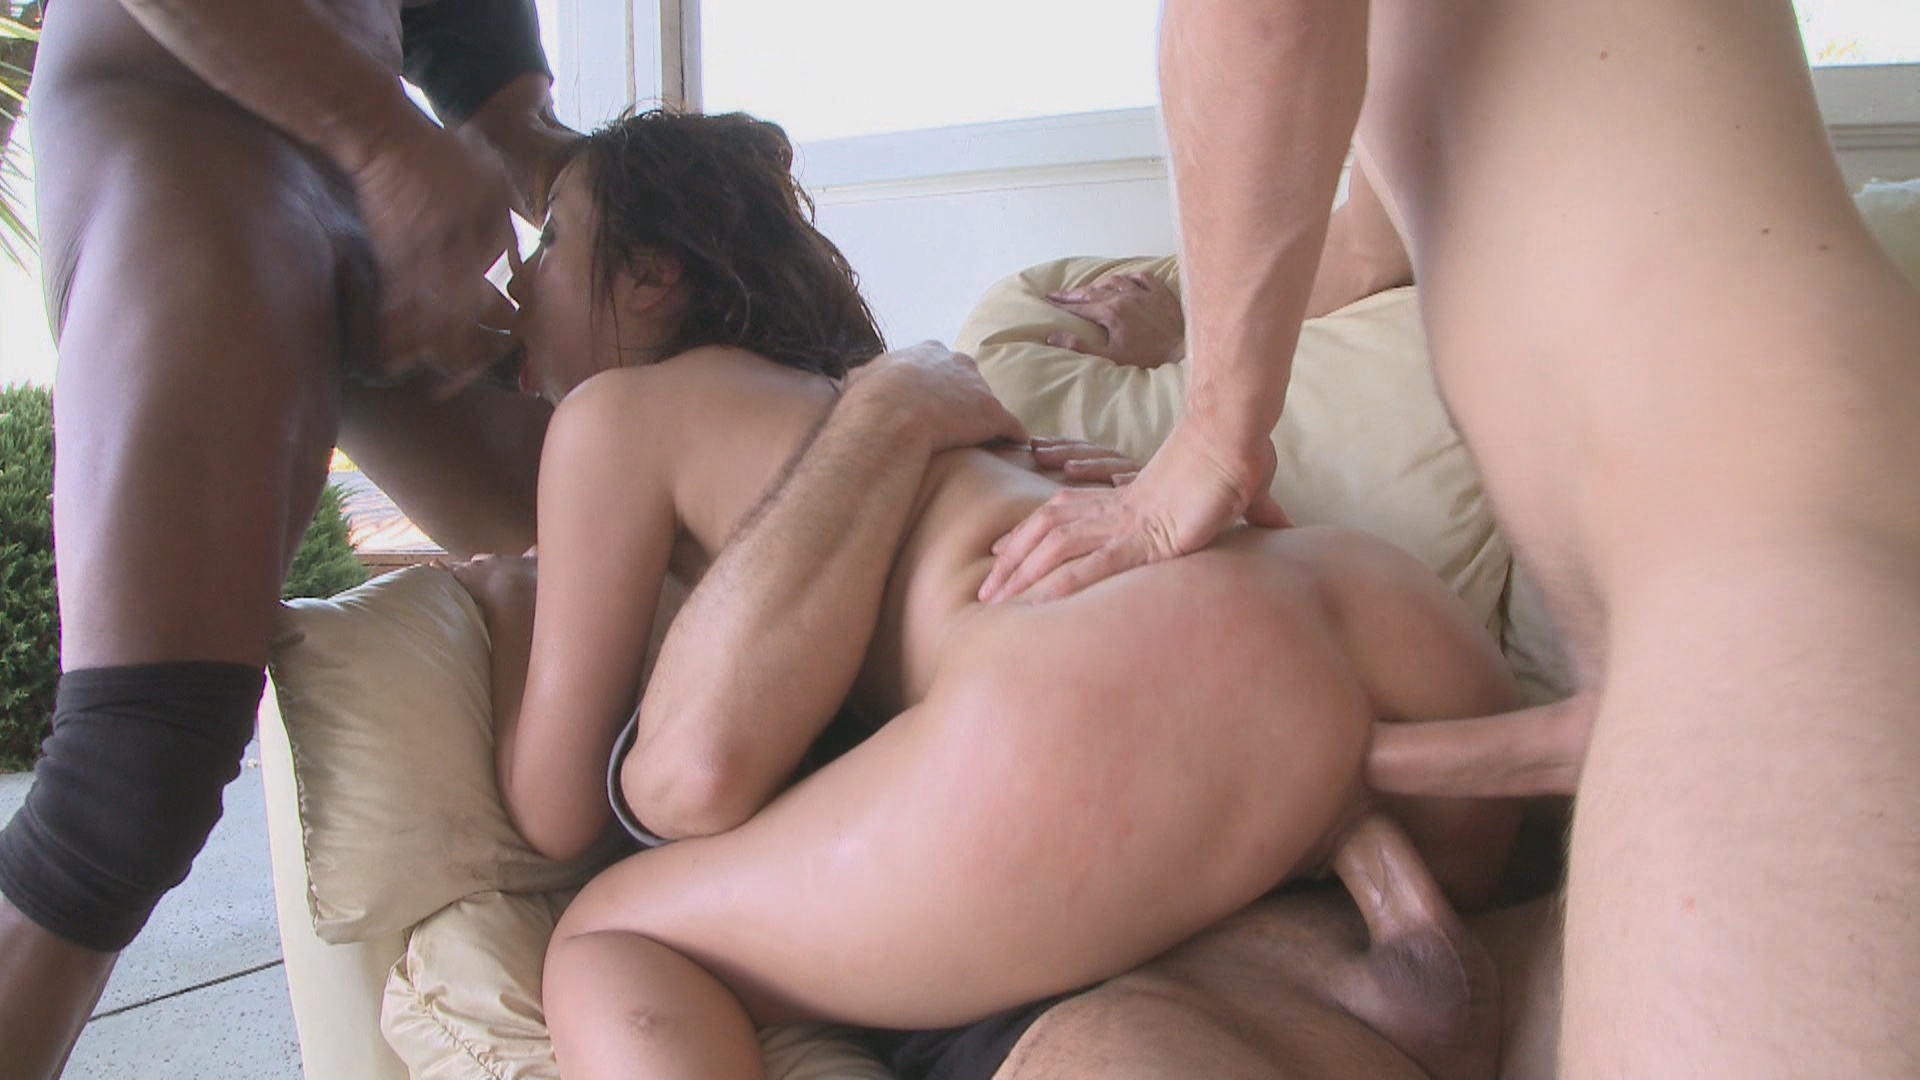 Hardcore Gangbang: The Exchange Student Xvideos